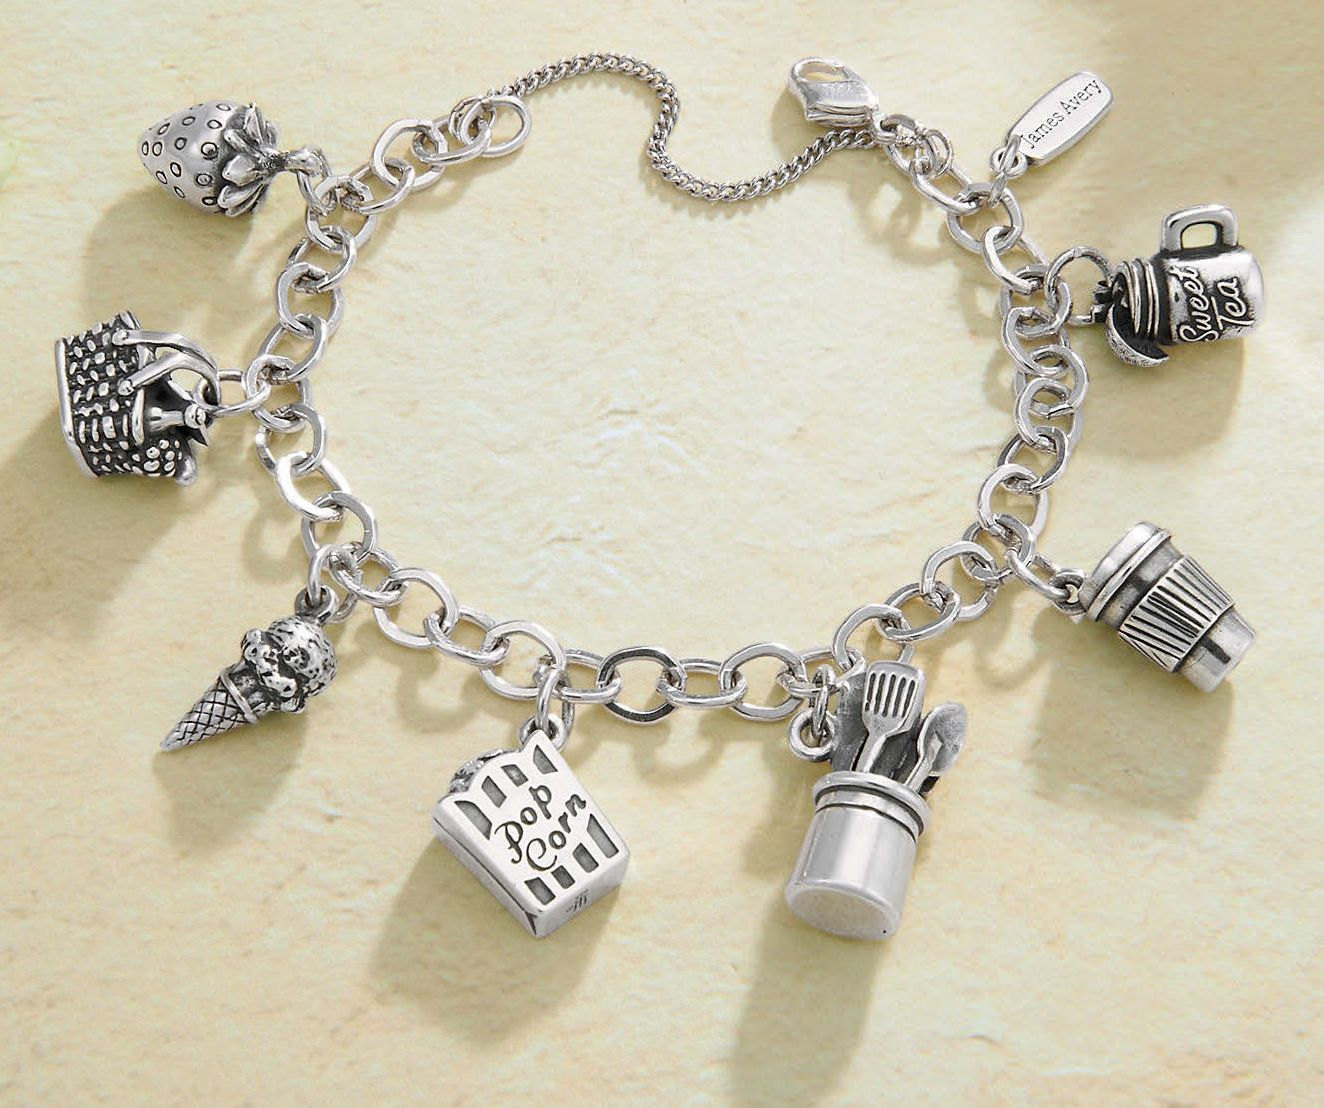 james avery wedding bands Charms to delight the senses from James Avery Jewelry jamesavery